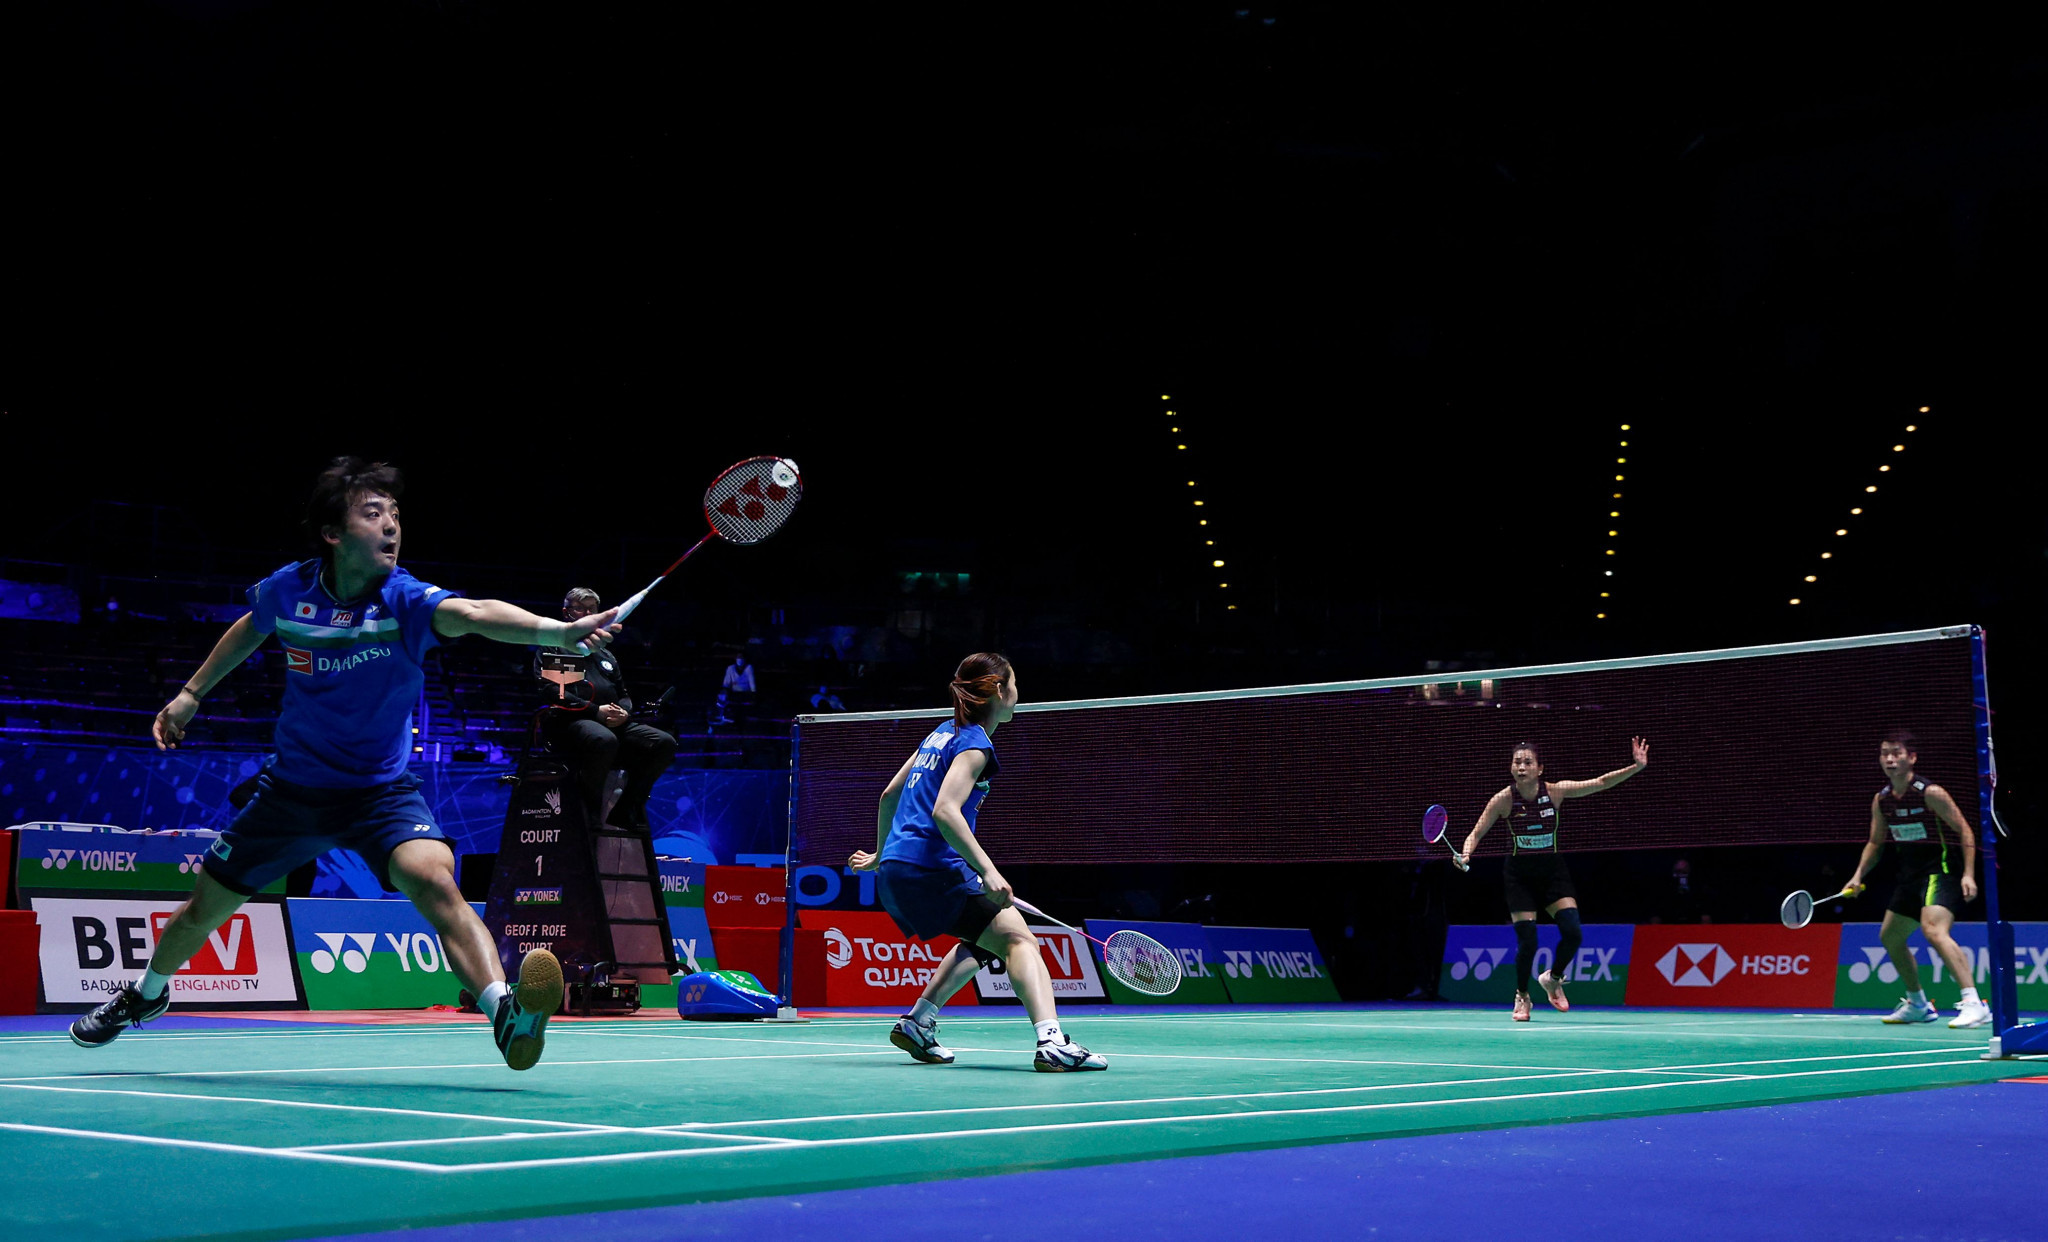 Members of the Badminton World Federation are set to vote on changes to the scoring system at tomorrow's AGM ©Getty Images